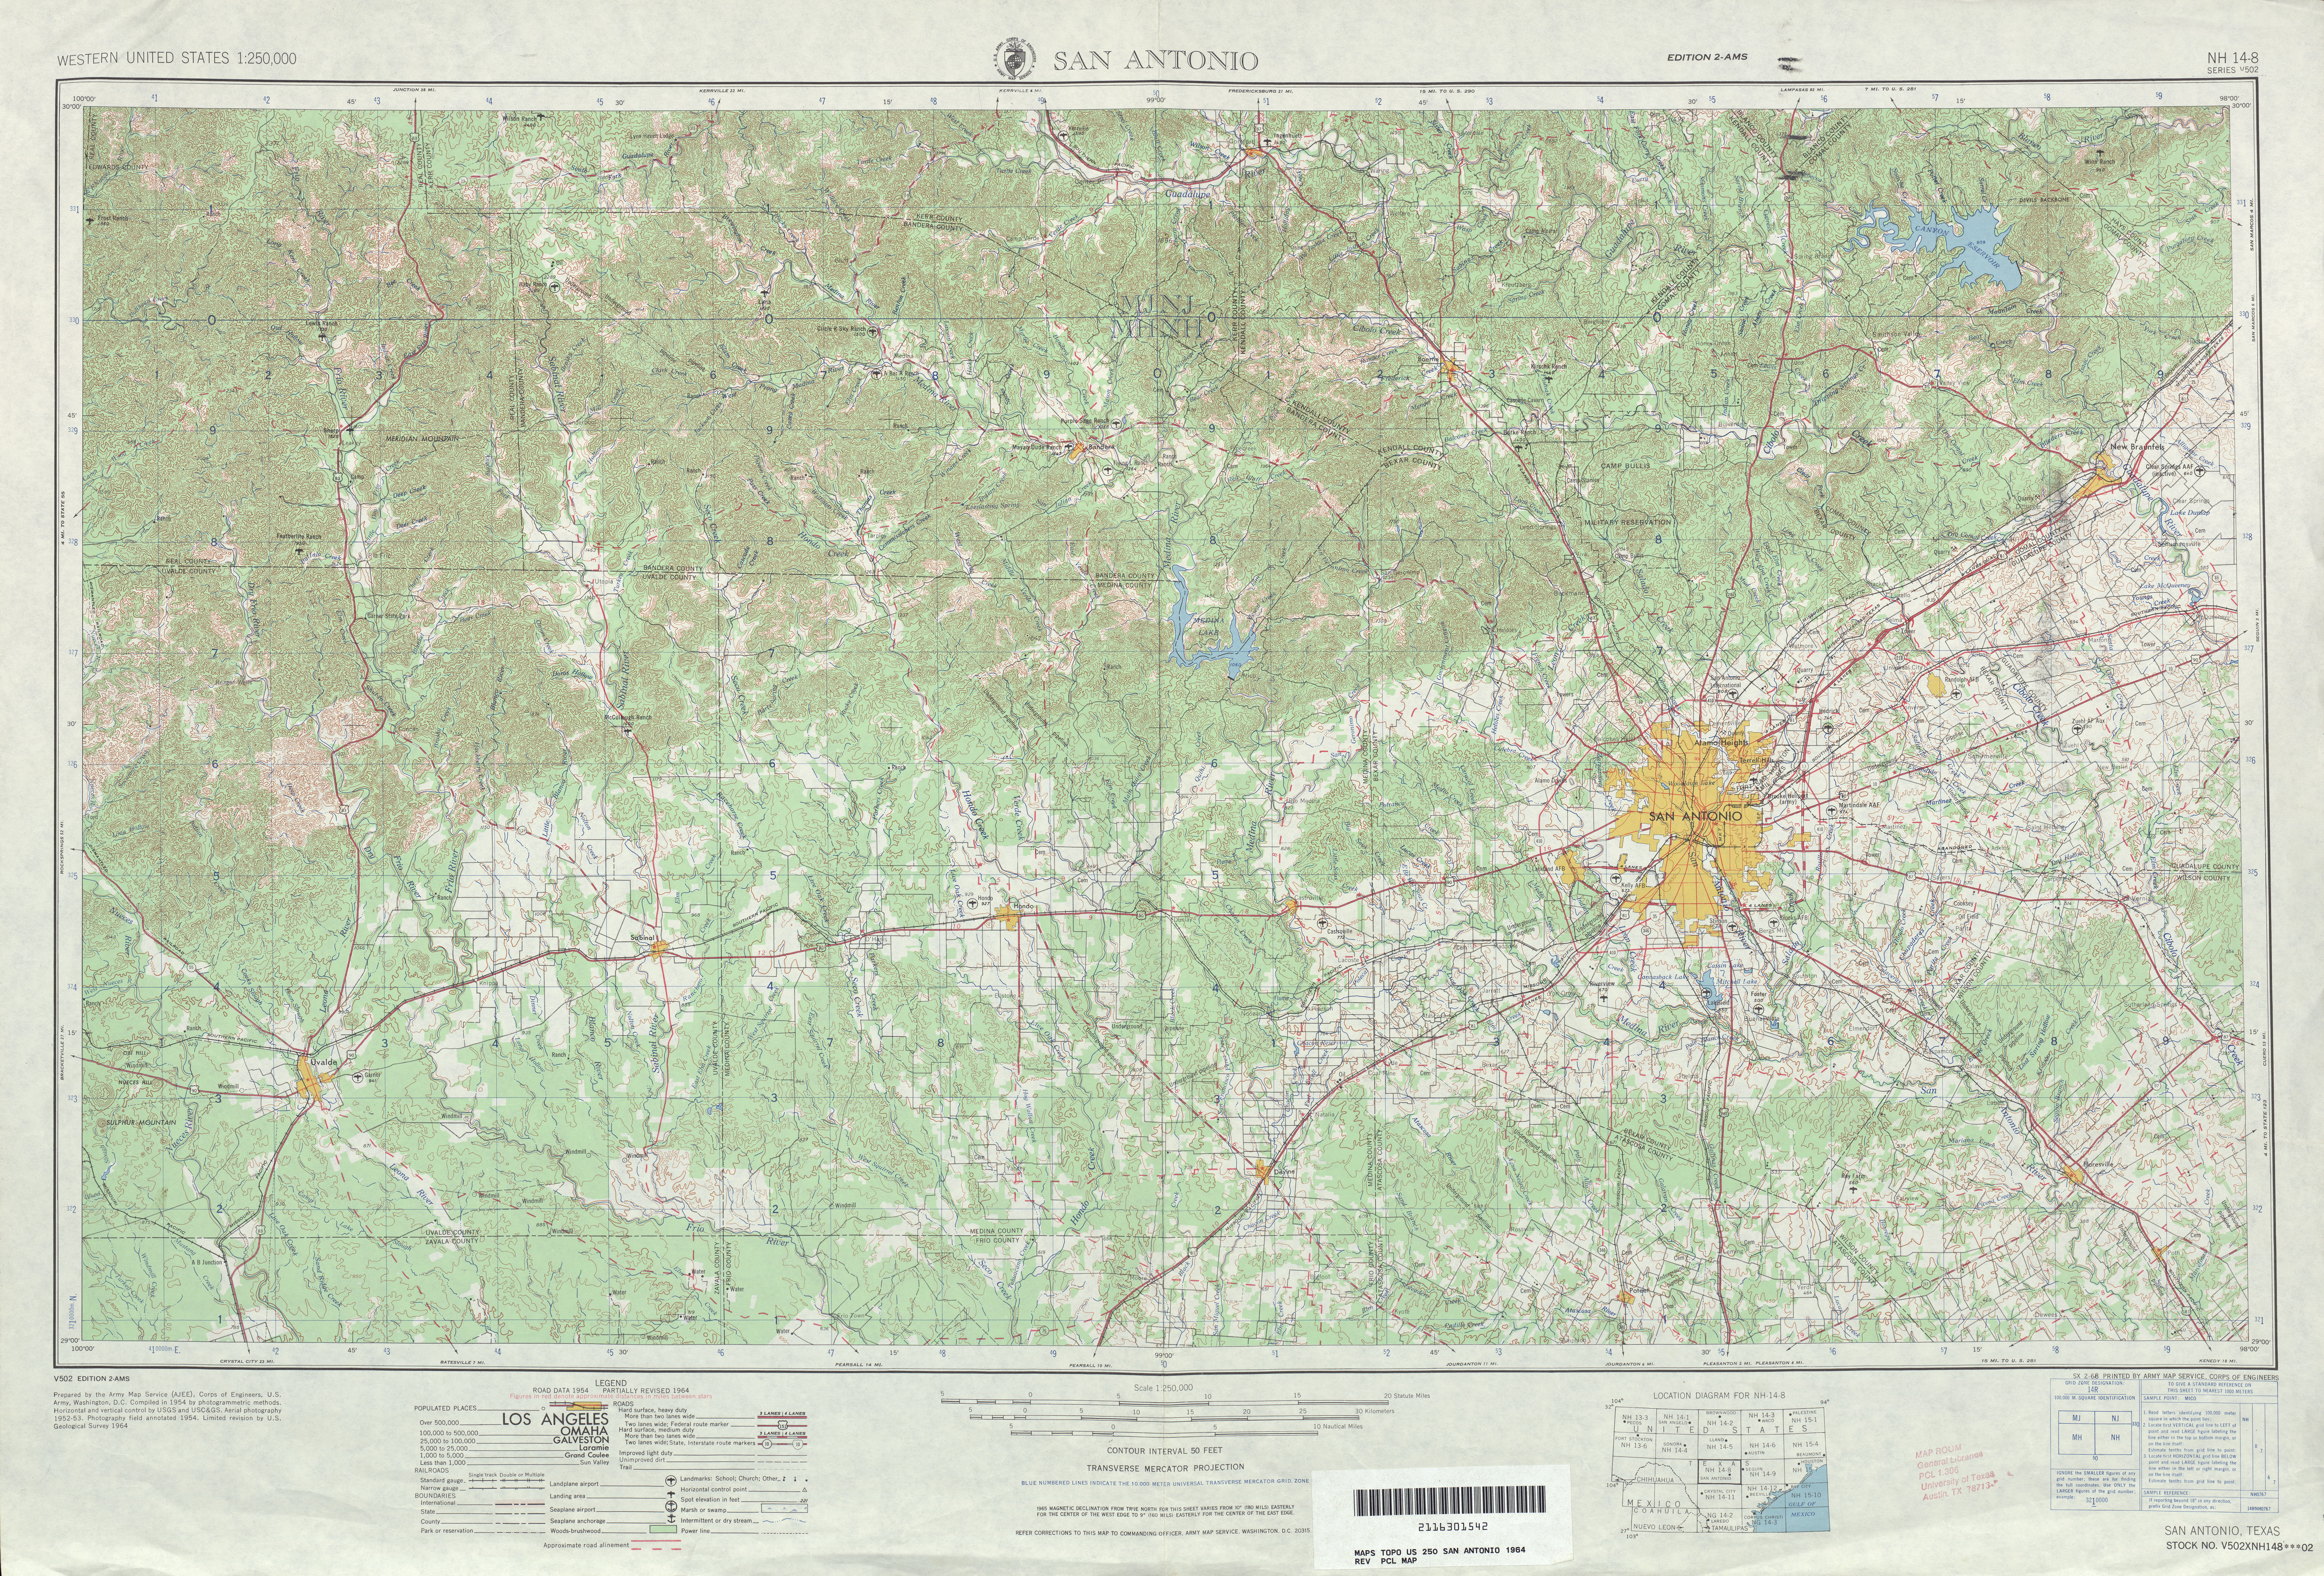 Texas Topographic Maps PerryCastañeda Map Collection UT - 1 50000 topo map us military